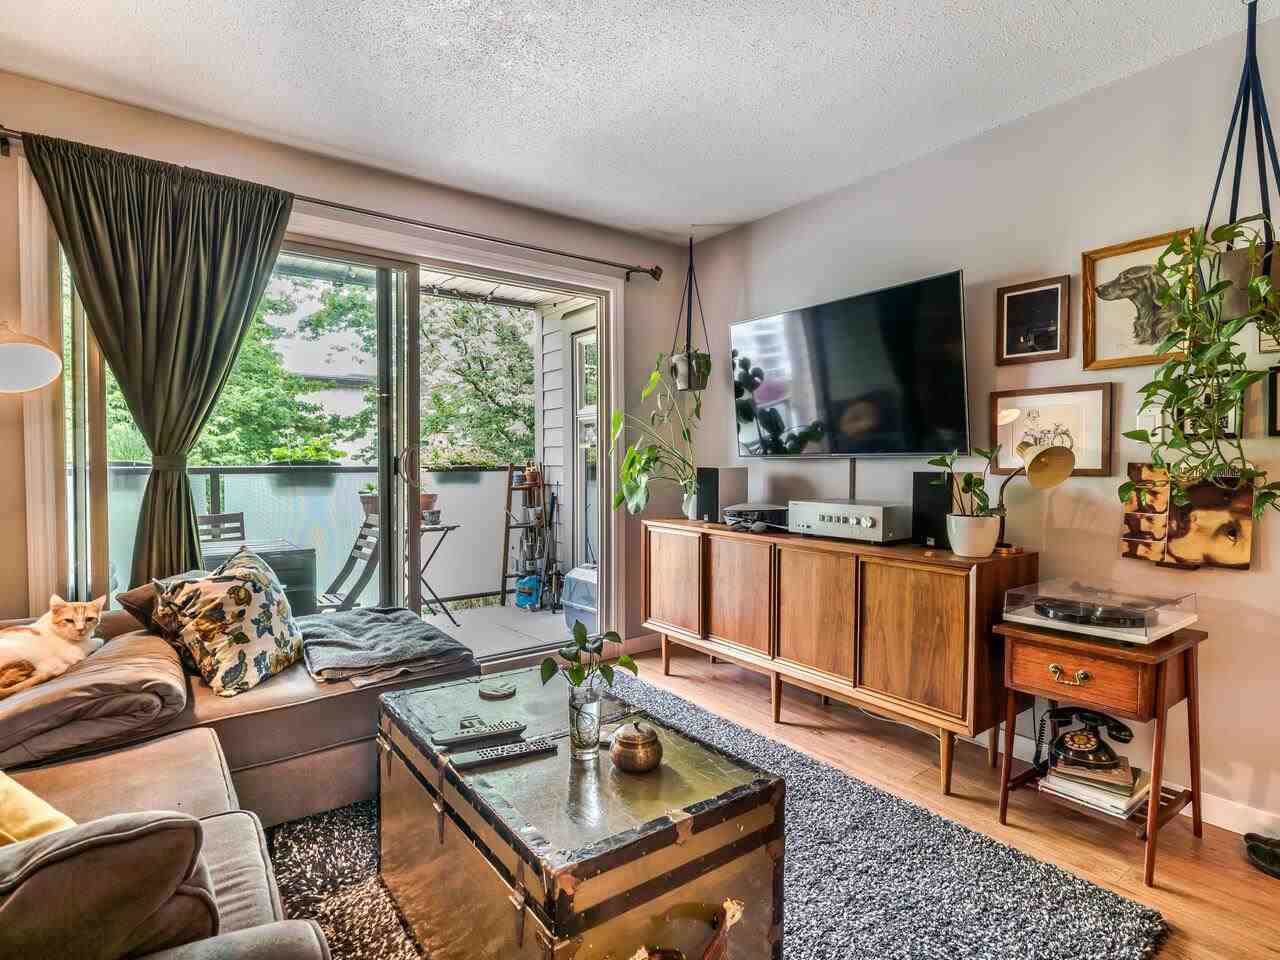 203 1864 FRANCES STREET - Hastings Apartment/Condo for sale, 1 Bedroom (R2593193) - #1